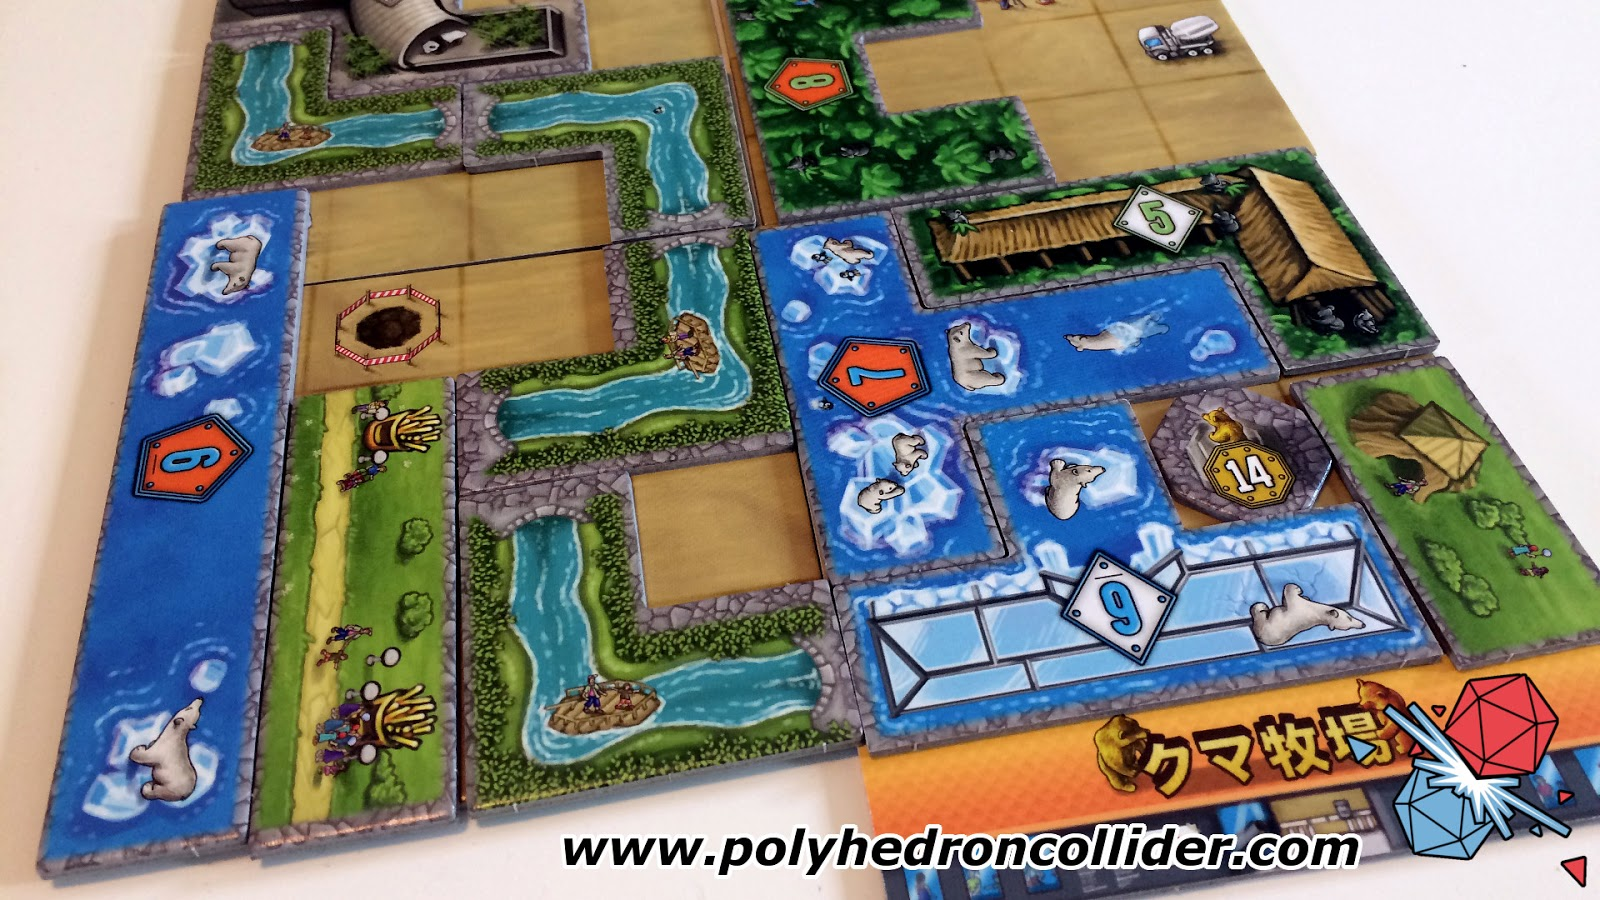 barenpark tile laying game review